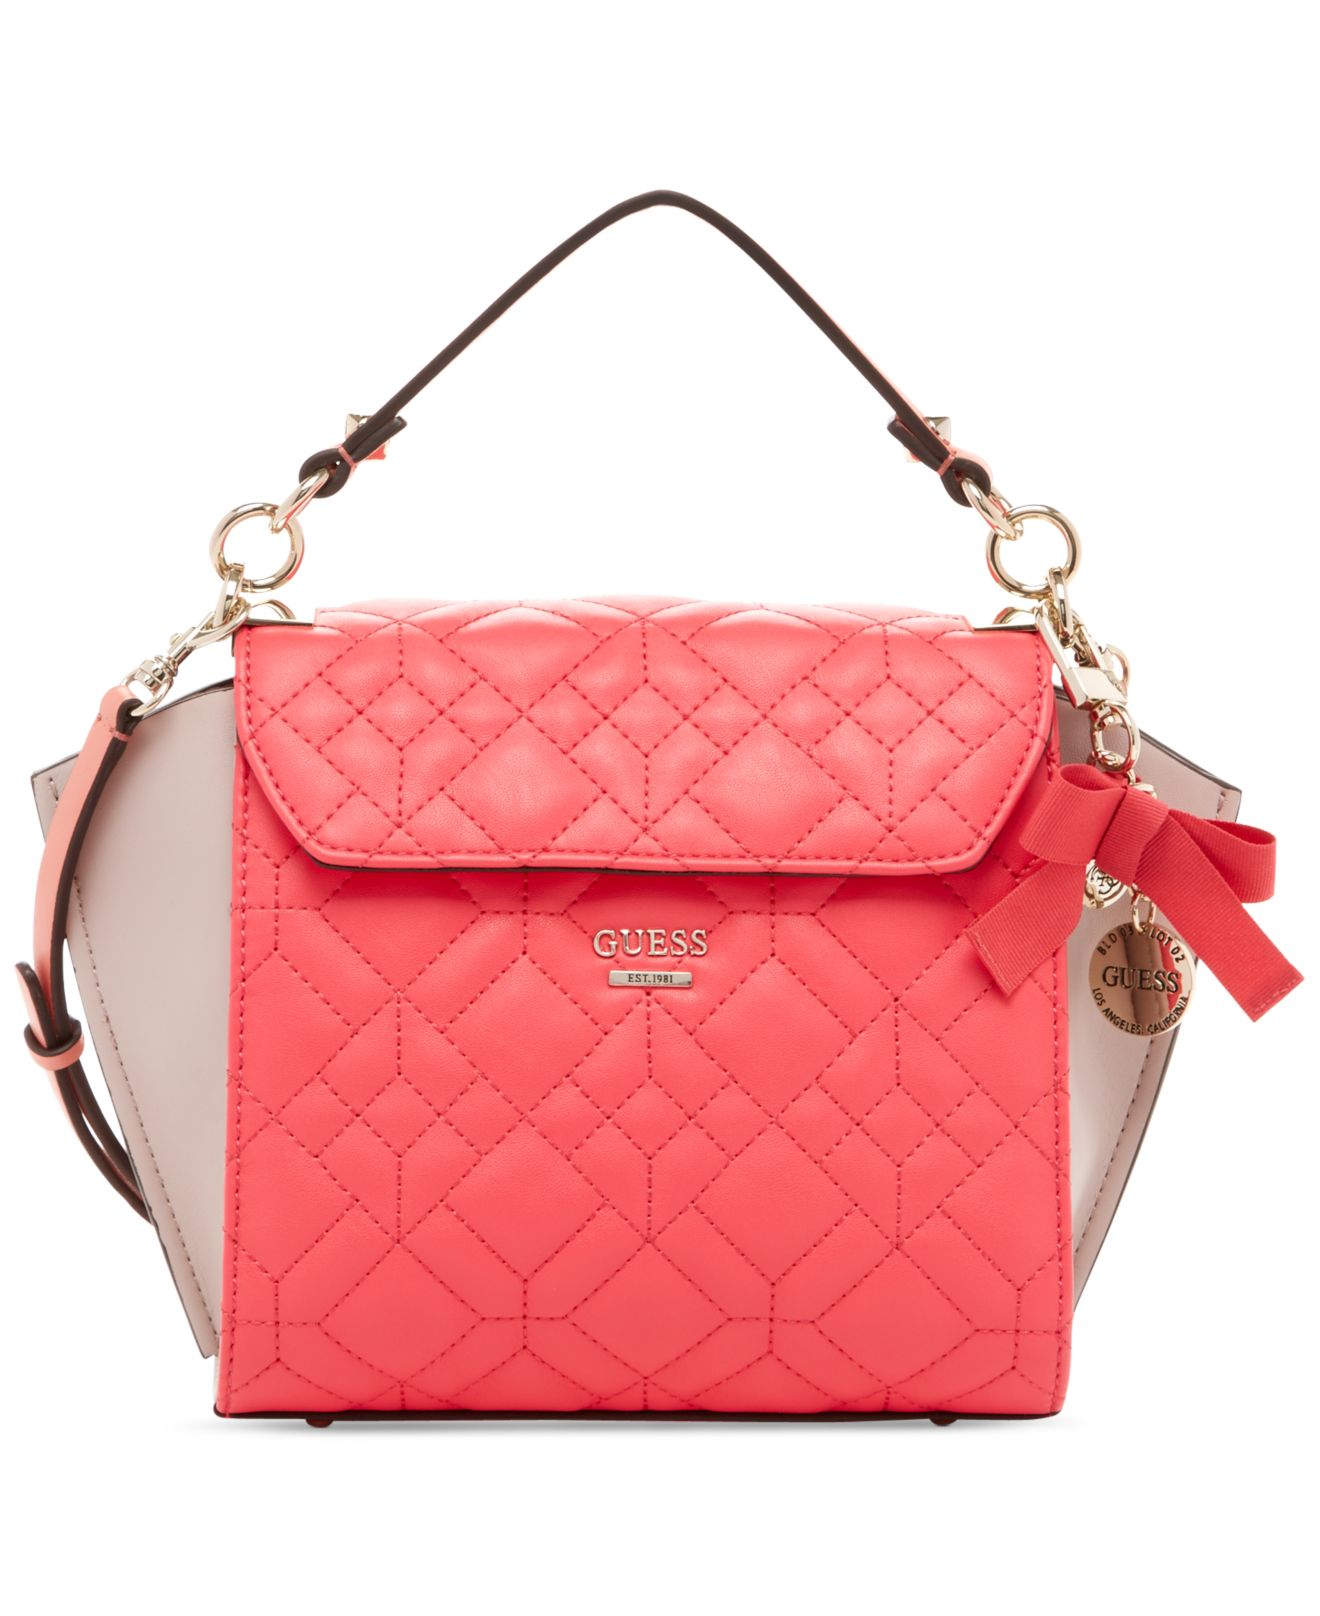 Guess Ines Top Handle Crossbody Bag in Pink | Lyst